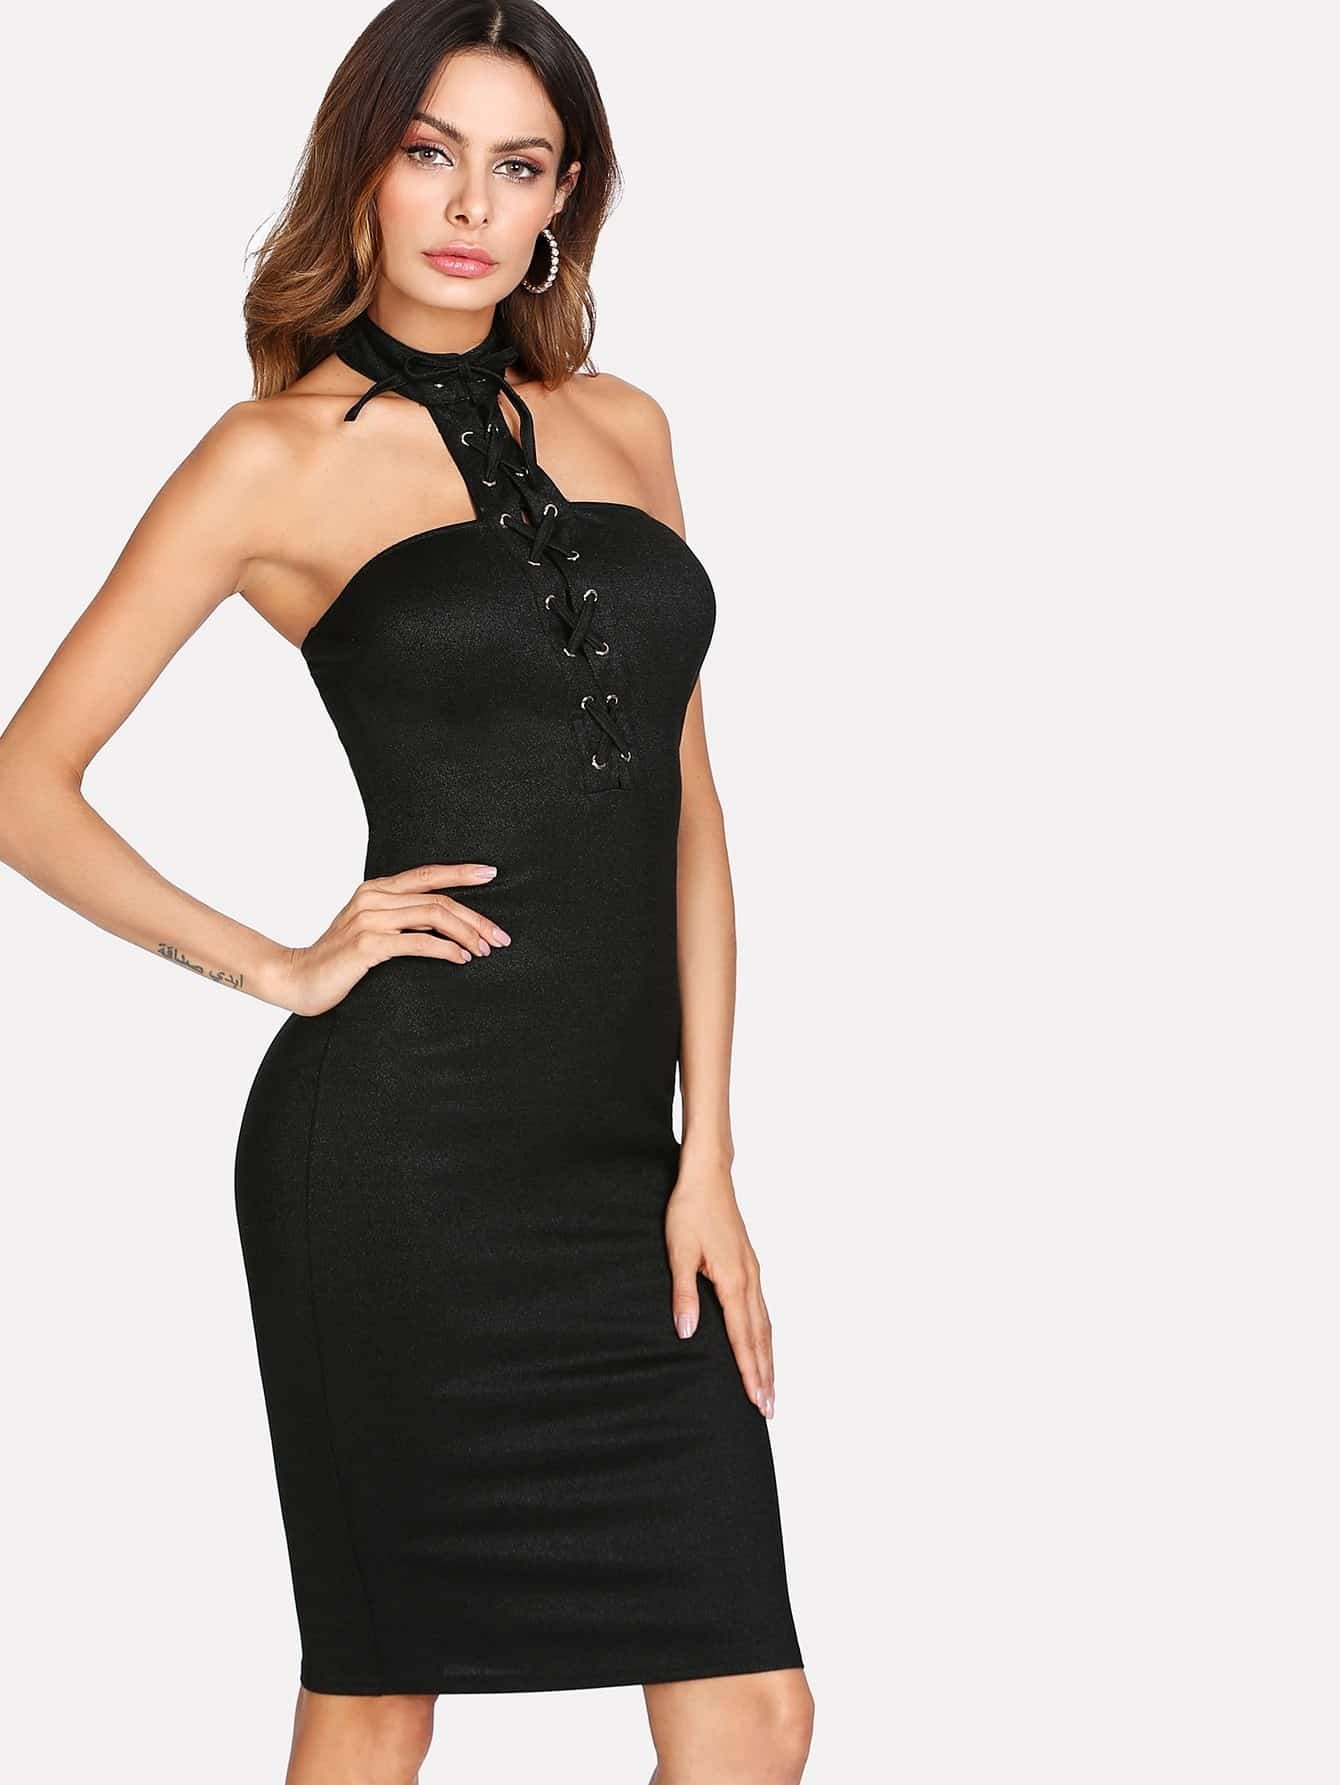 Grommet Lace Up Form Fitting Halter Dress guipure lace form fitting dress